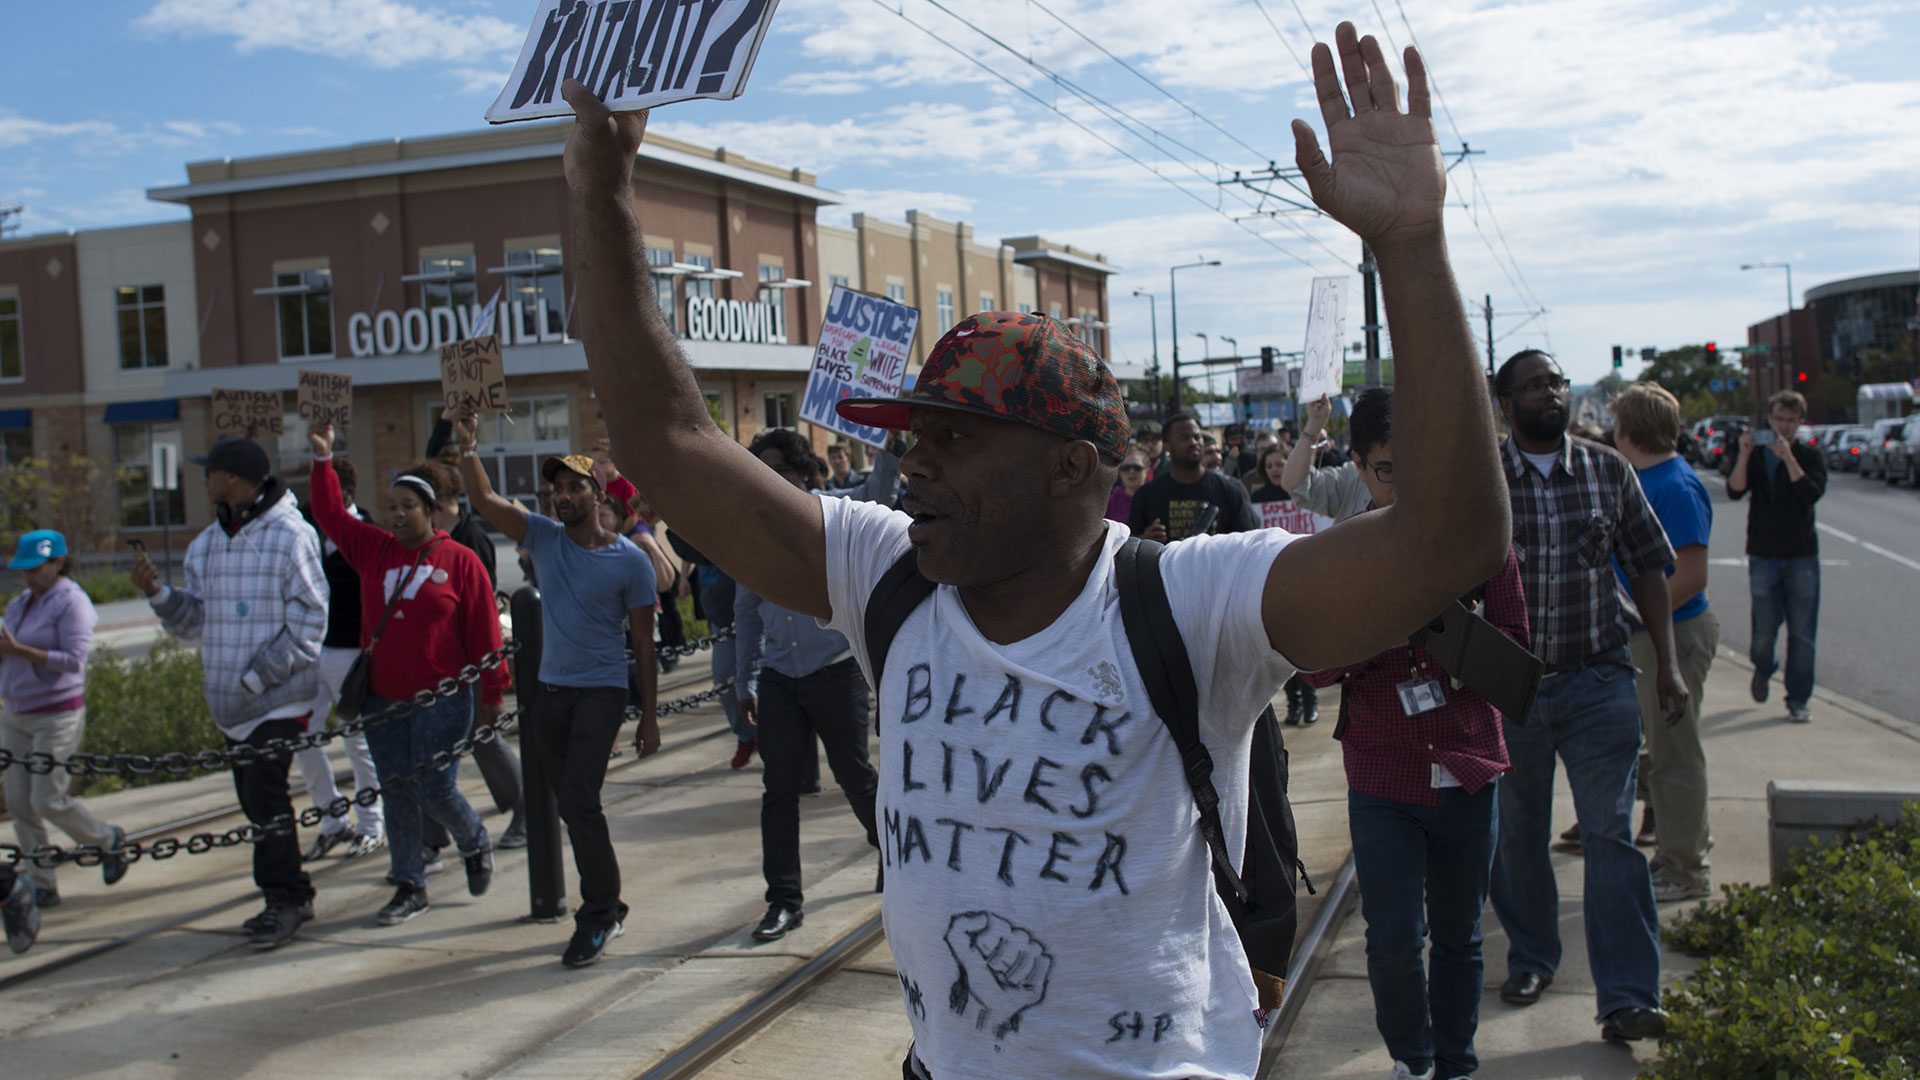 Black Lives Matter protest against St. Paul police brutality.